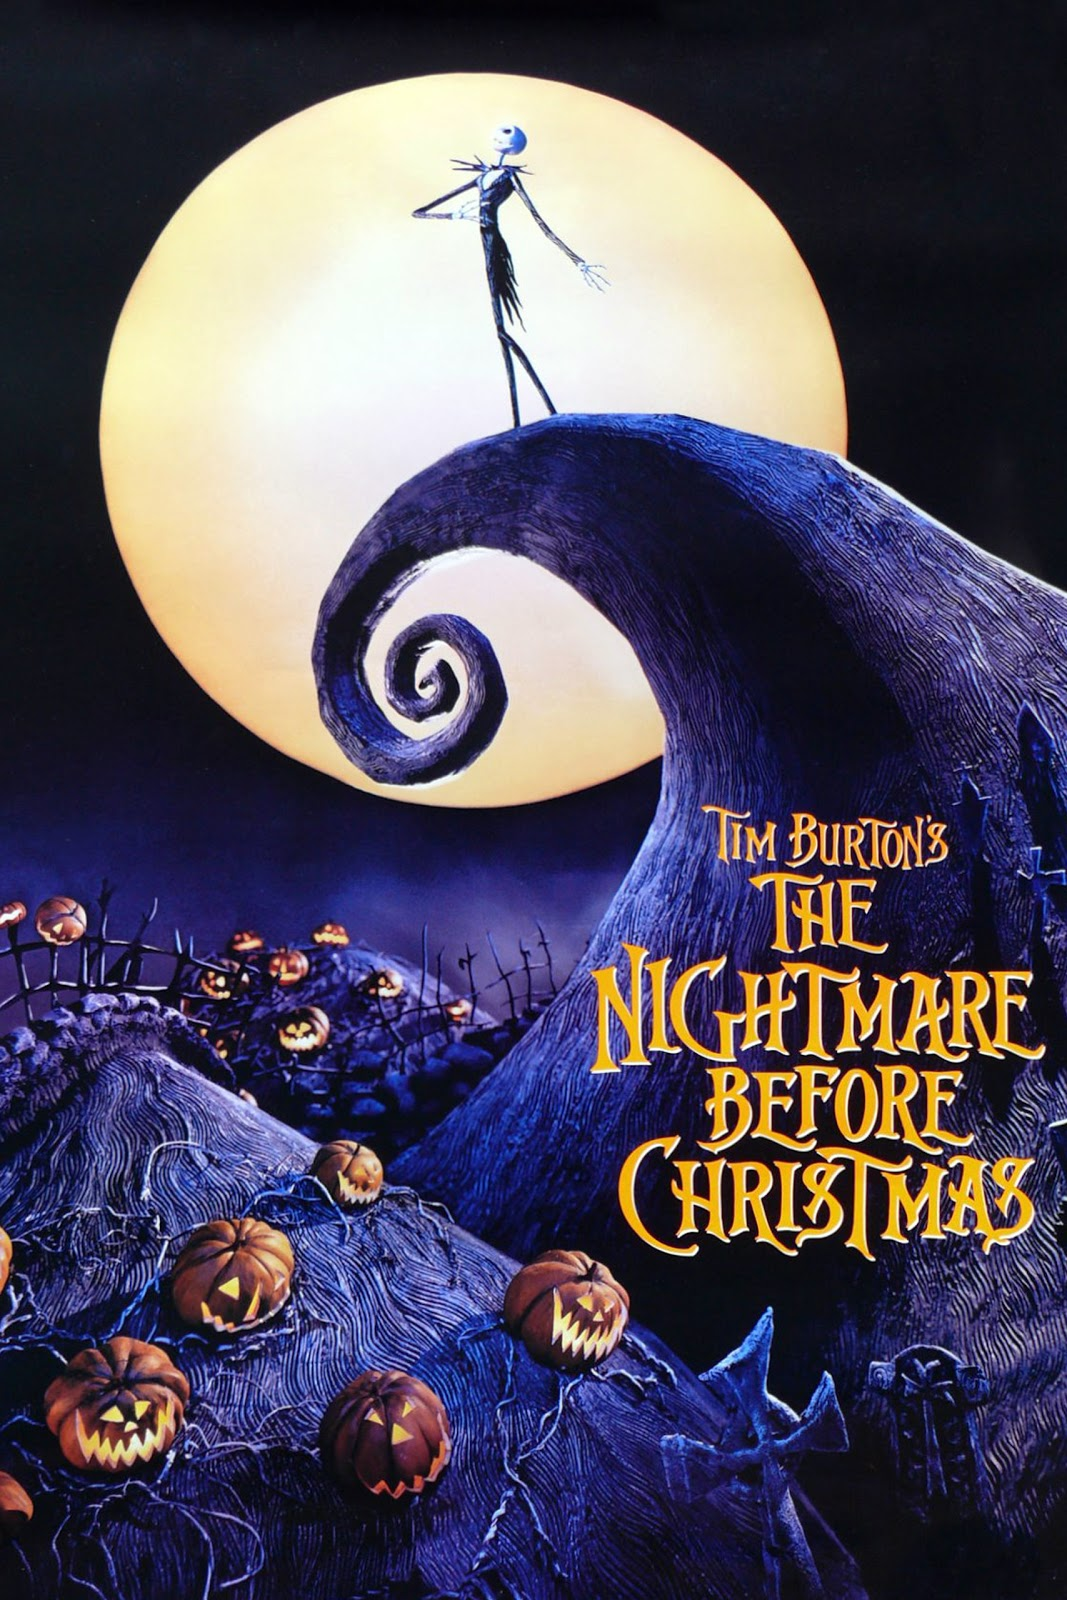 http://4.bp.blogspot.com/-IxmCETy9Q7c/TtS_YKhDk2I/AAAAAAAABtM/4wno4s6z3nA/s1600/The_Nightmare_Before_Christmas_iphone%2Bwallpaper_1.jpg